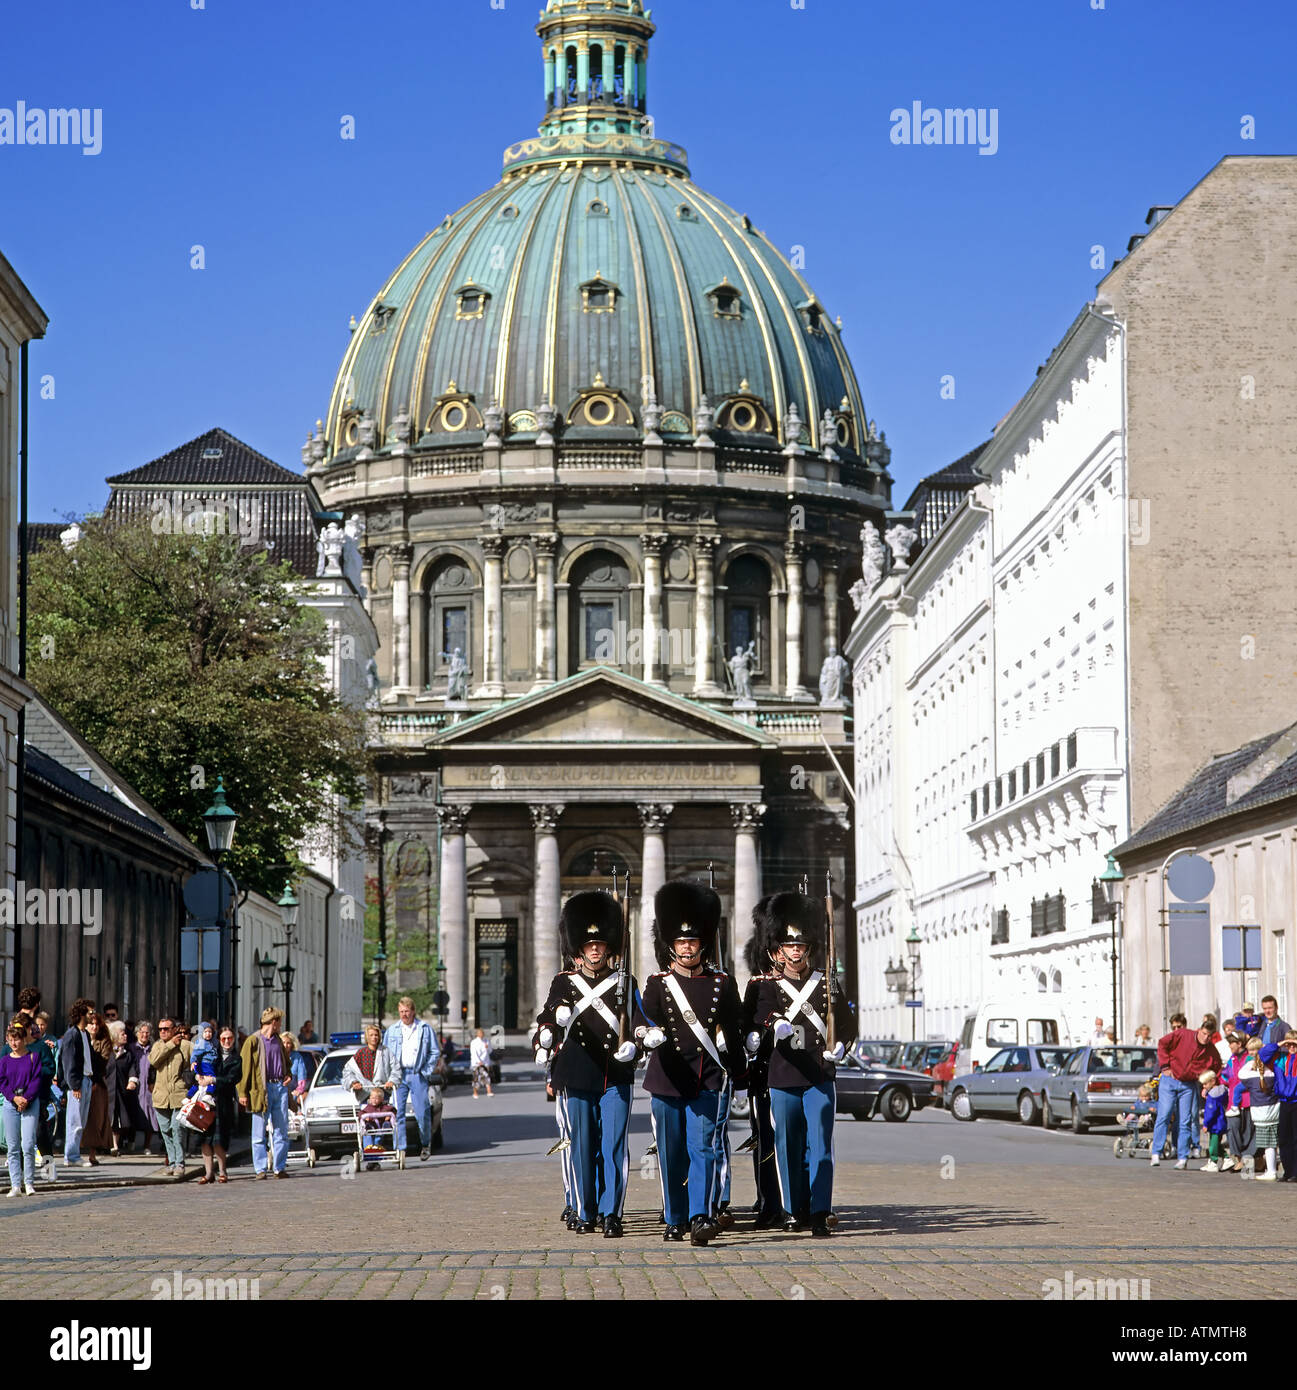 Royal life guards marching in front of Frederik's church, the Marble church, Copenhagen, Denmark - Stock Image